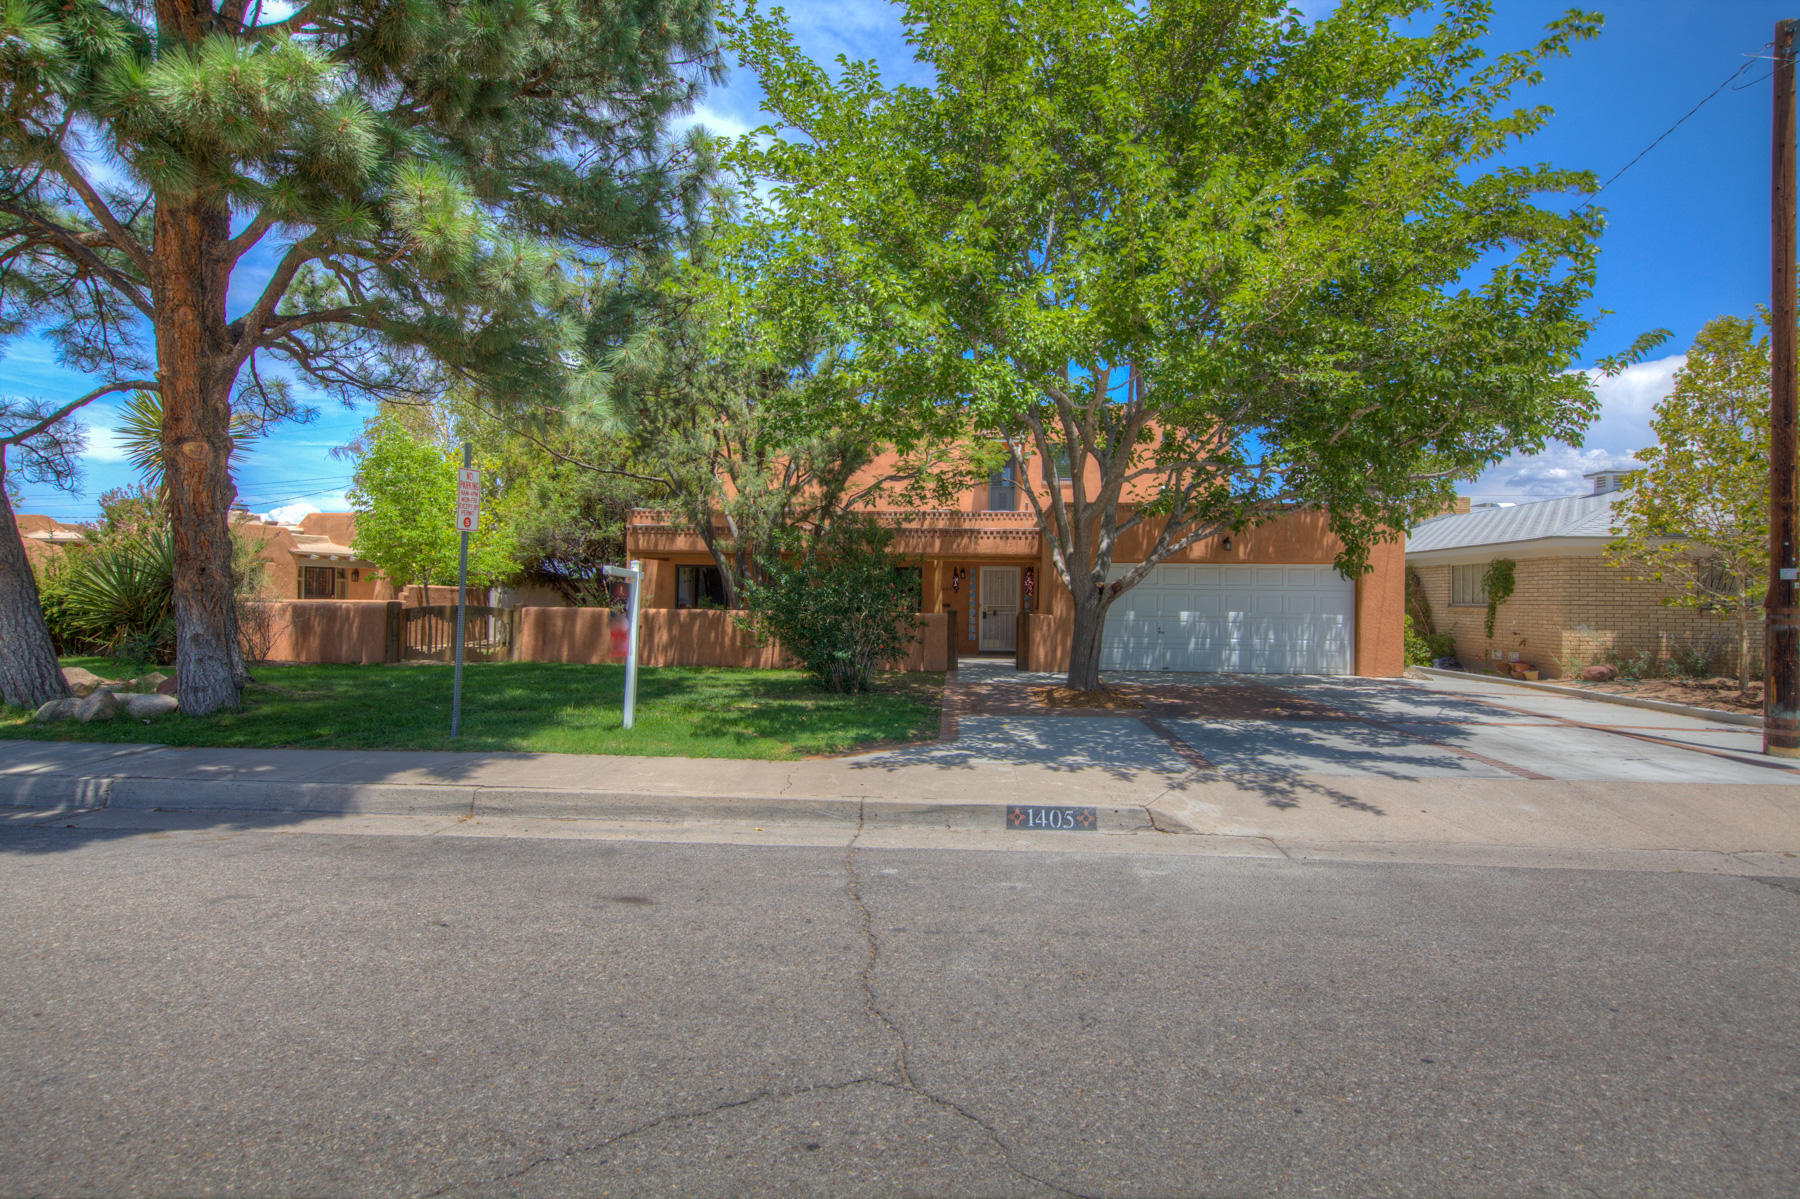 1405 SIGMA CHI ROAD NE, ALBUQUERQUE, NM 87106